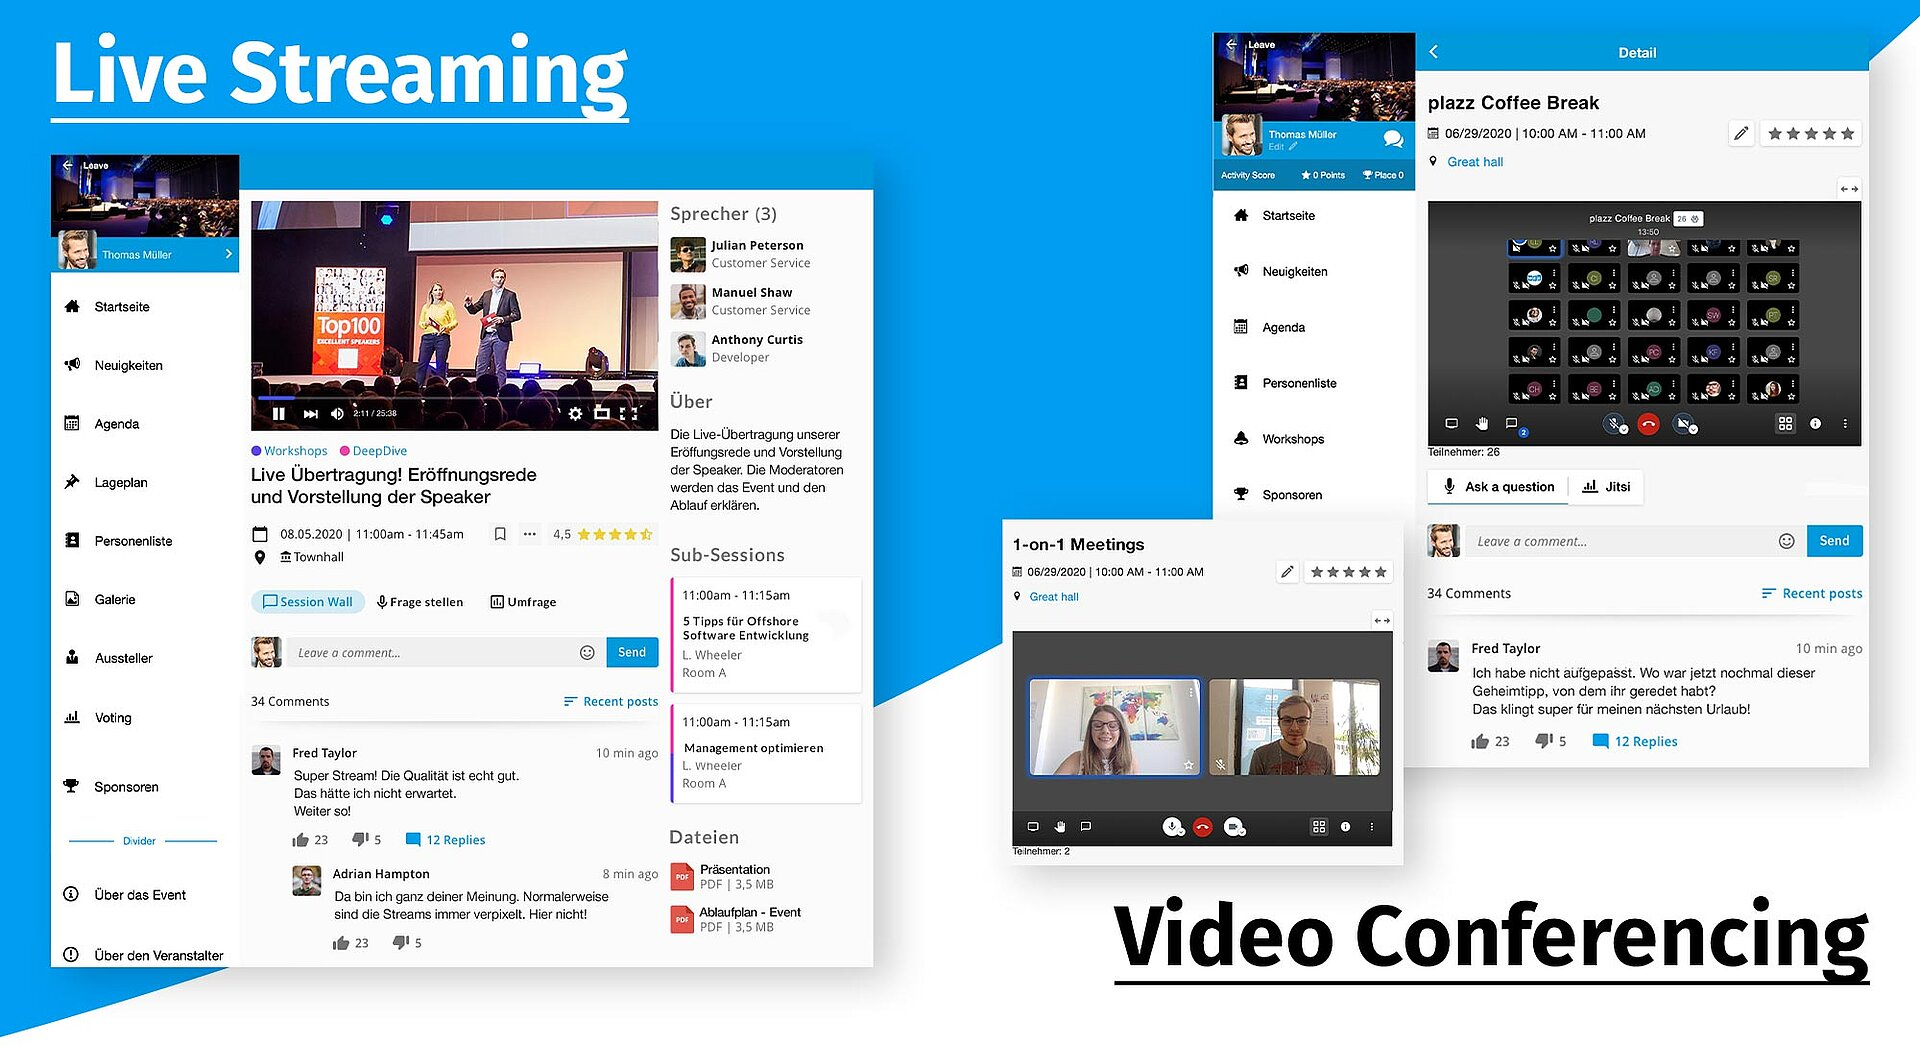 Live Streaming und Video Conferencing